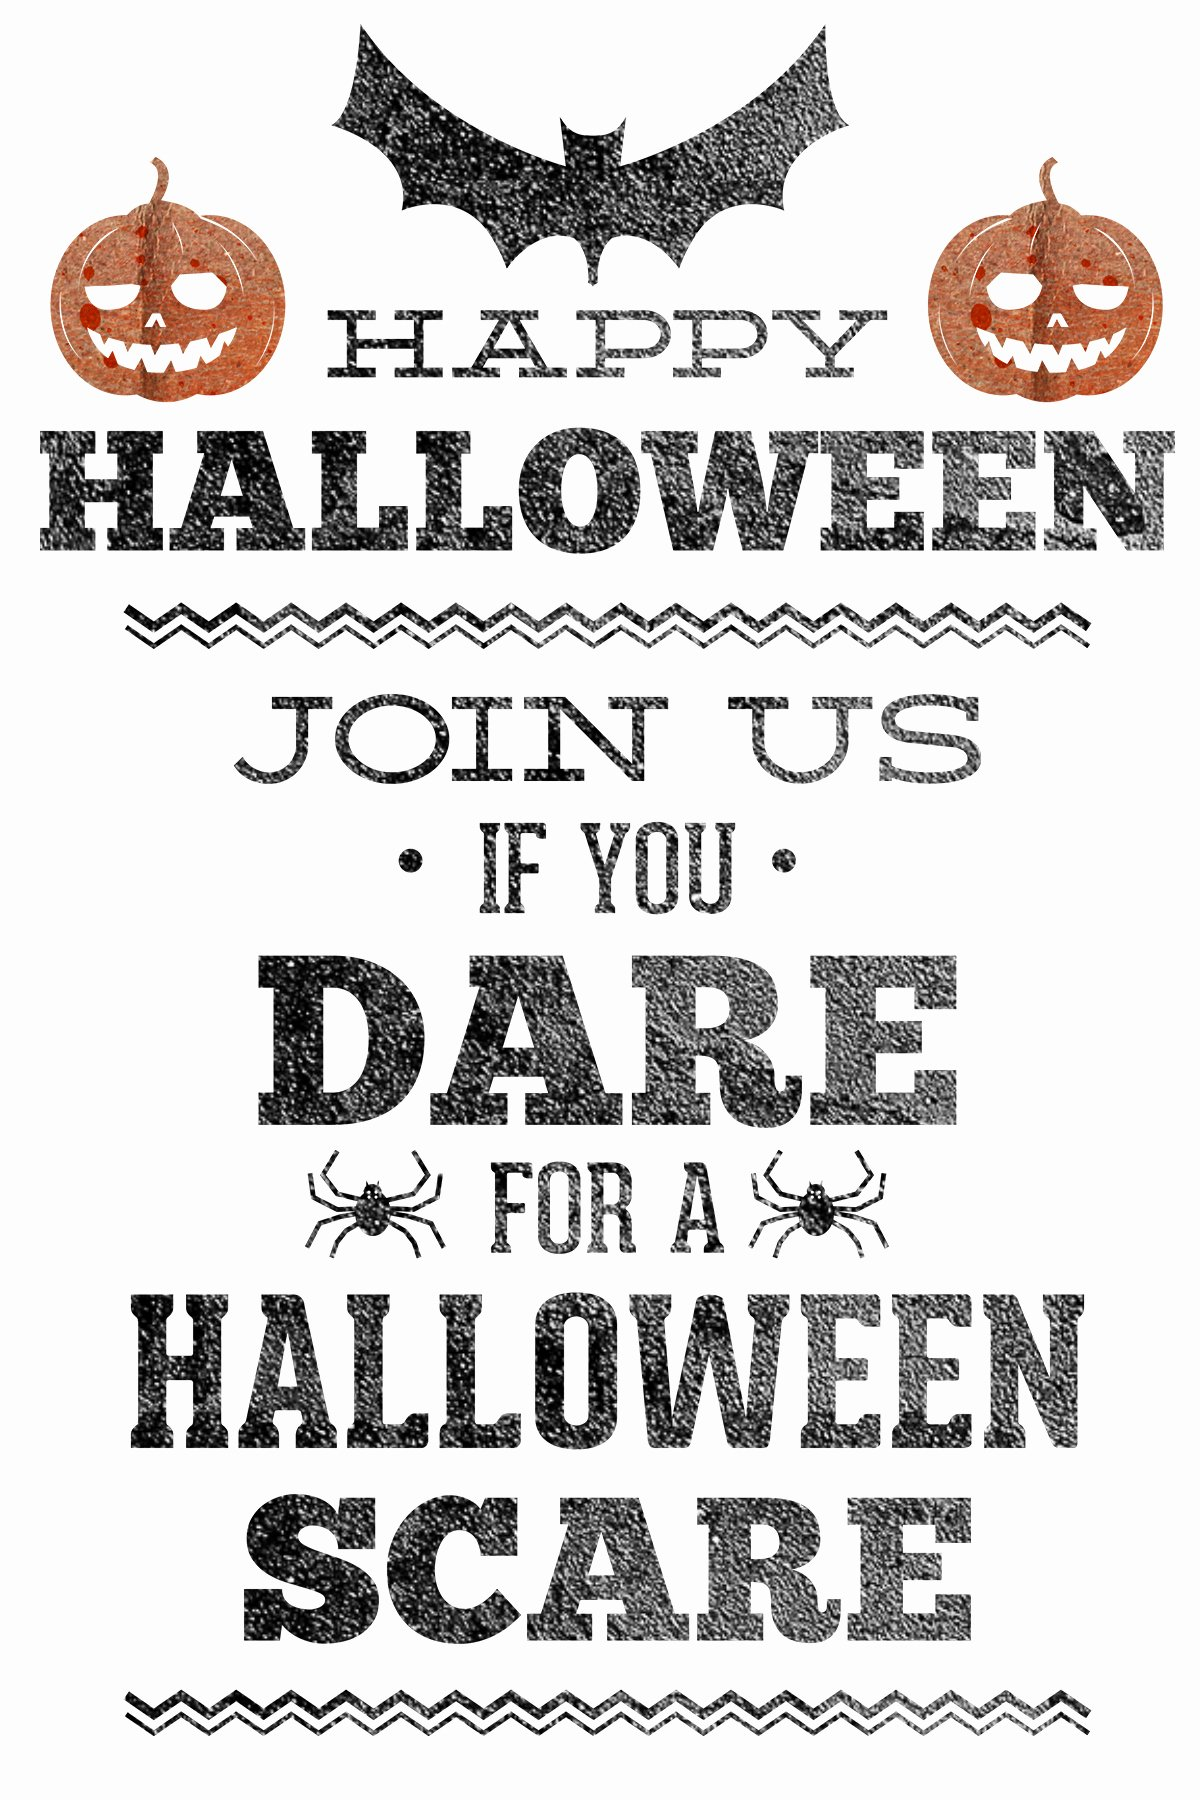 Halloween Party Invitations Template Elegant Halloween Party Invitations Free Printable – Festival